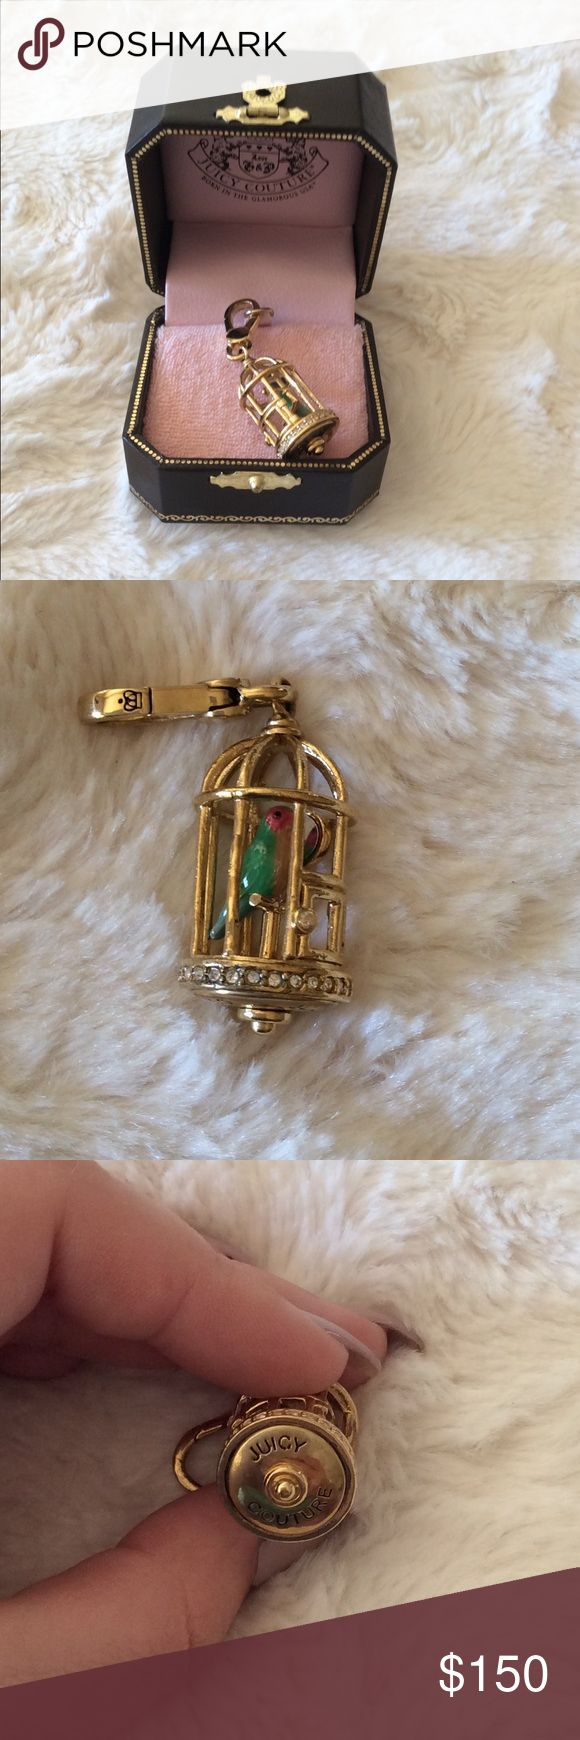 RARE Juicy Couture Birdcage Charm 100% authentic Rare 2009 Juicy Couture birdcage charm. All rhinestones in tact. In great condition. Comes with original box. No trades Juicy Couture Jewelry Bracelets